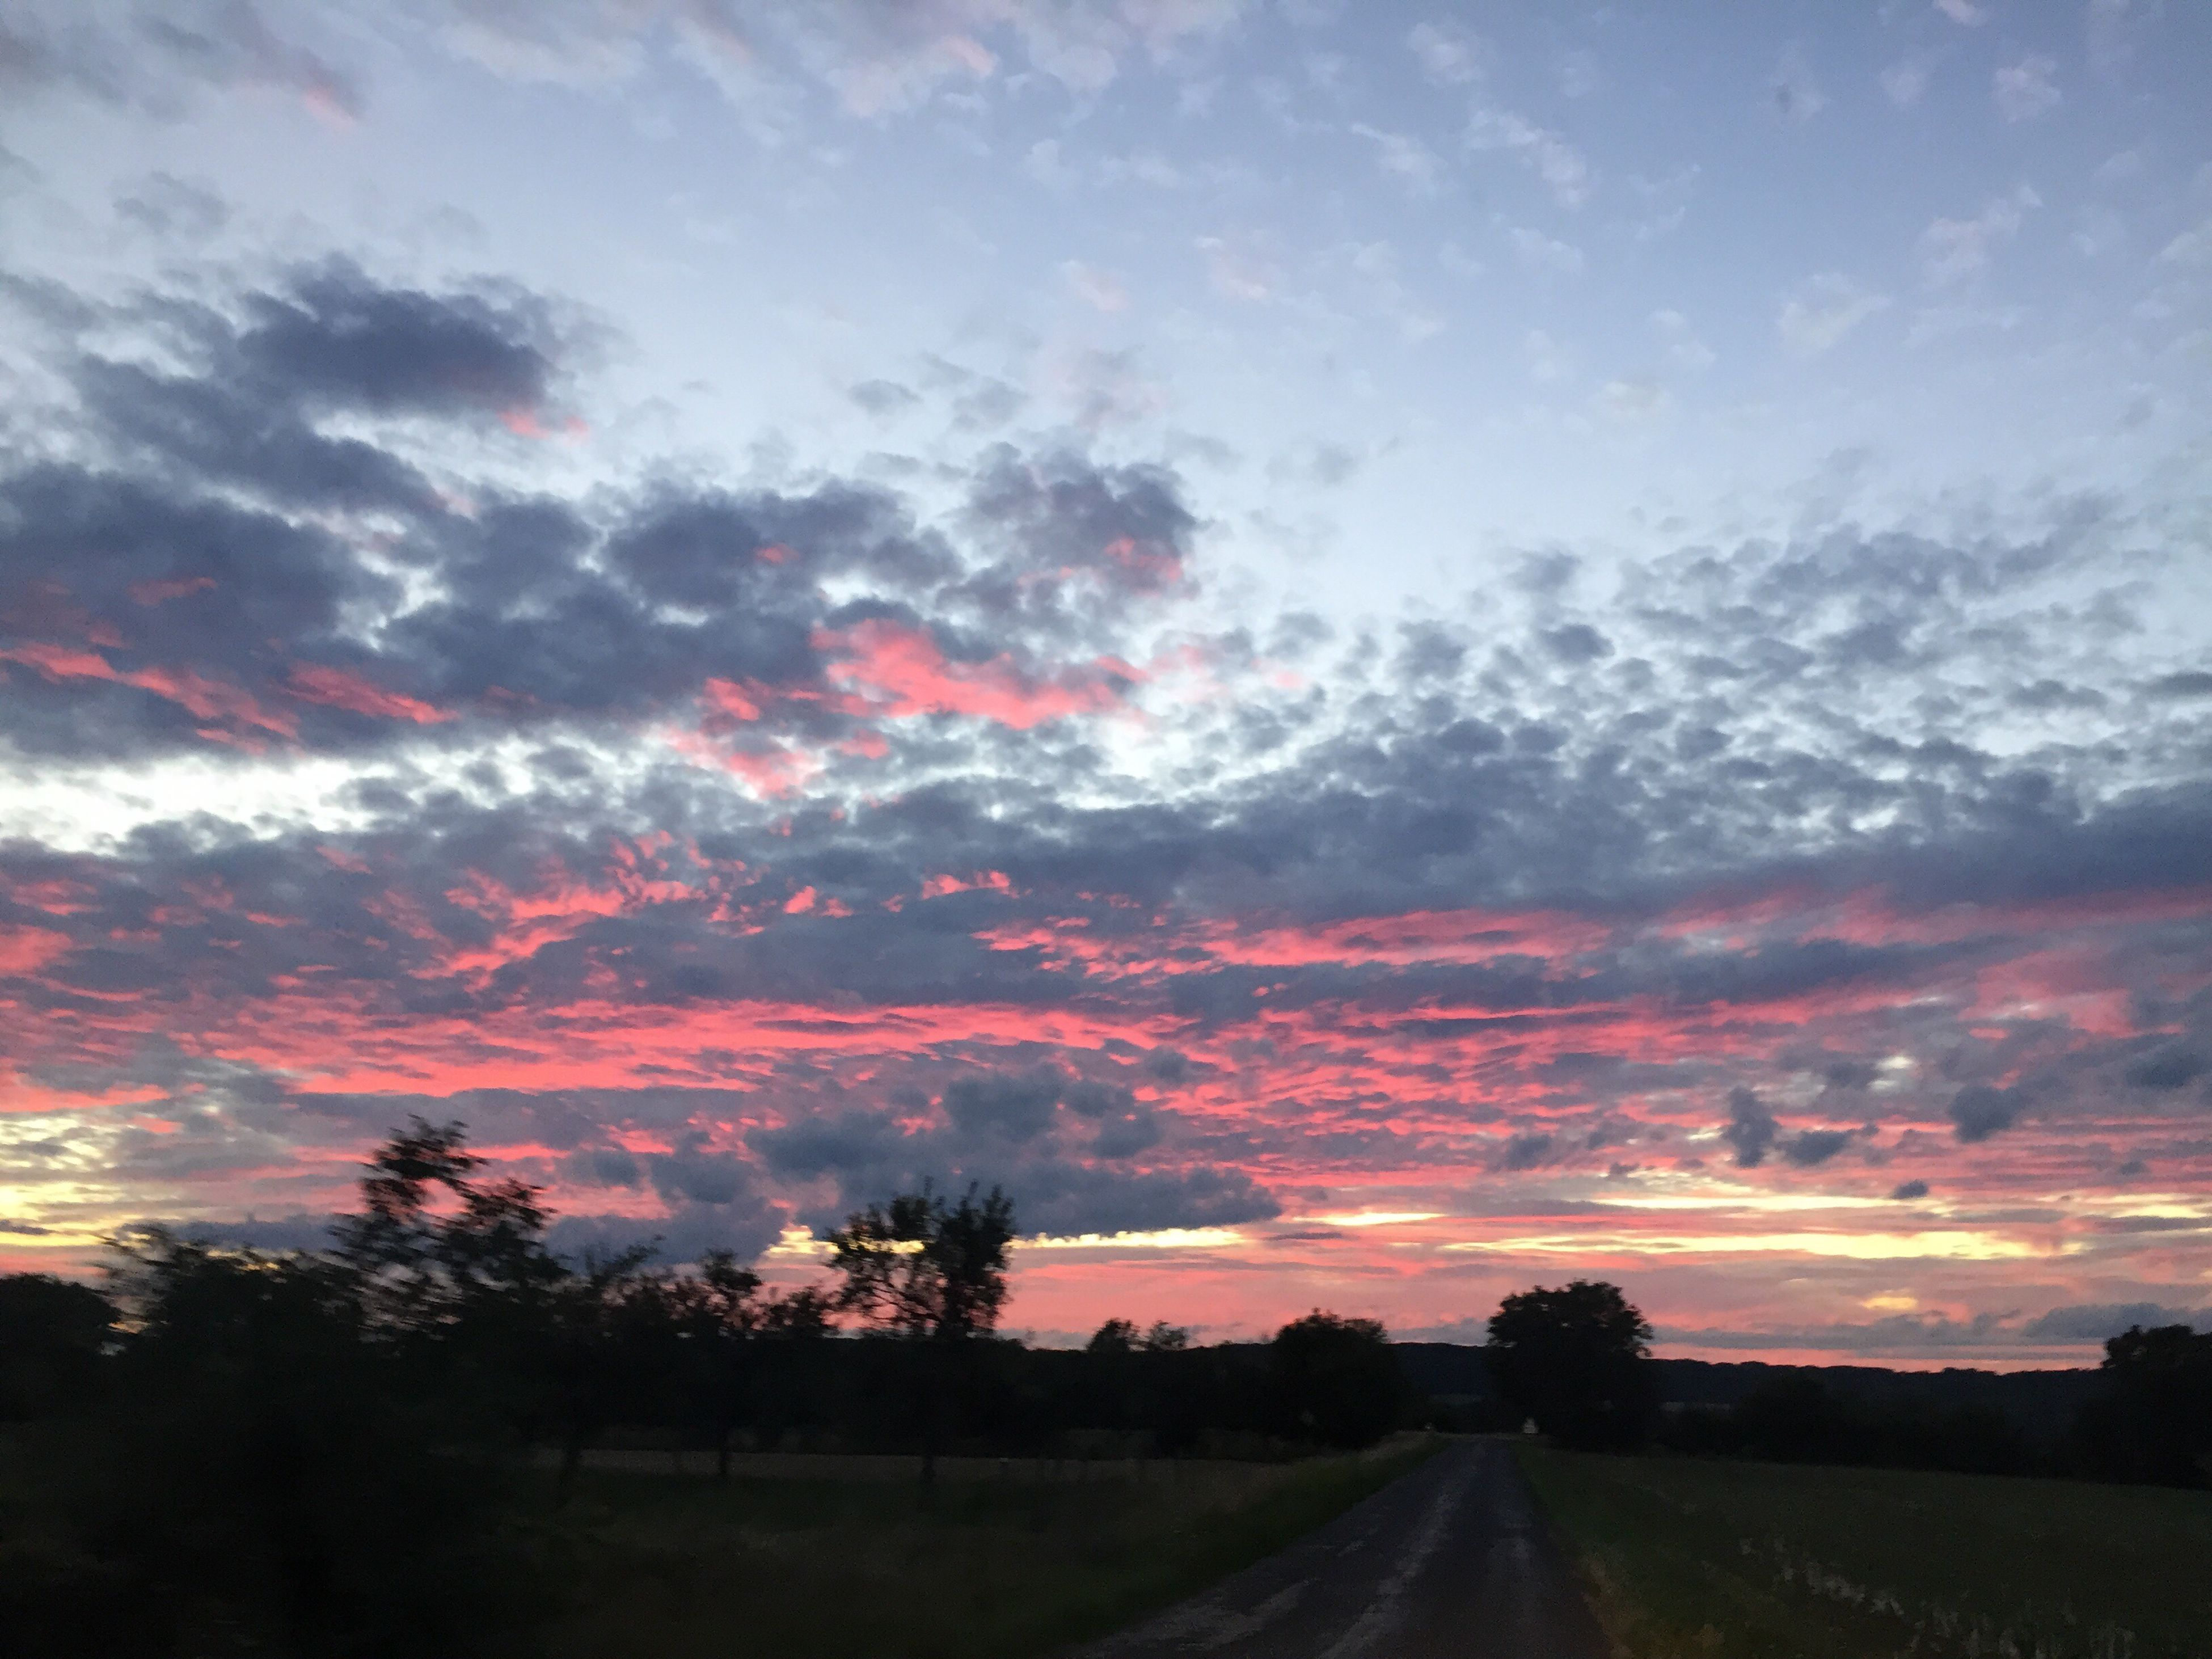 road, the way forward, sky, scenics, nature, sunset, cloud - sky, landscape, beauty in nature, tranquil scene, tranquility, transportation, no people, tree, silhouette, outdoors, day